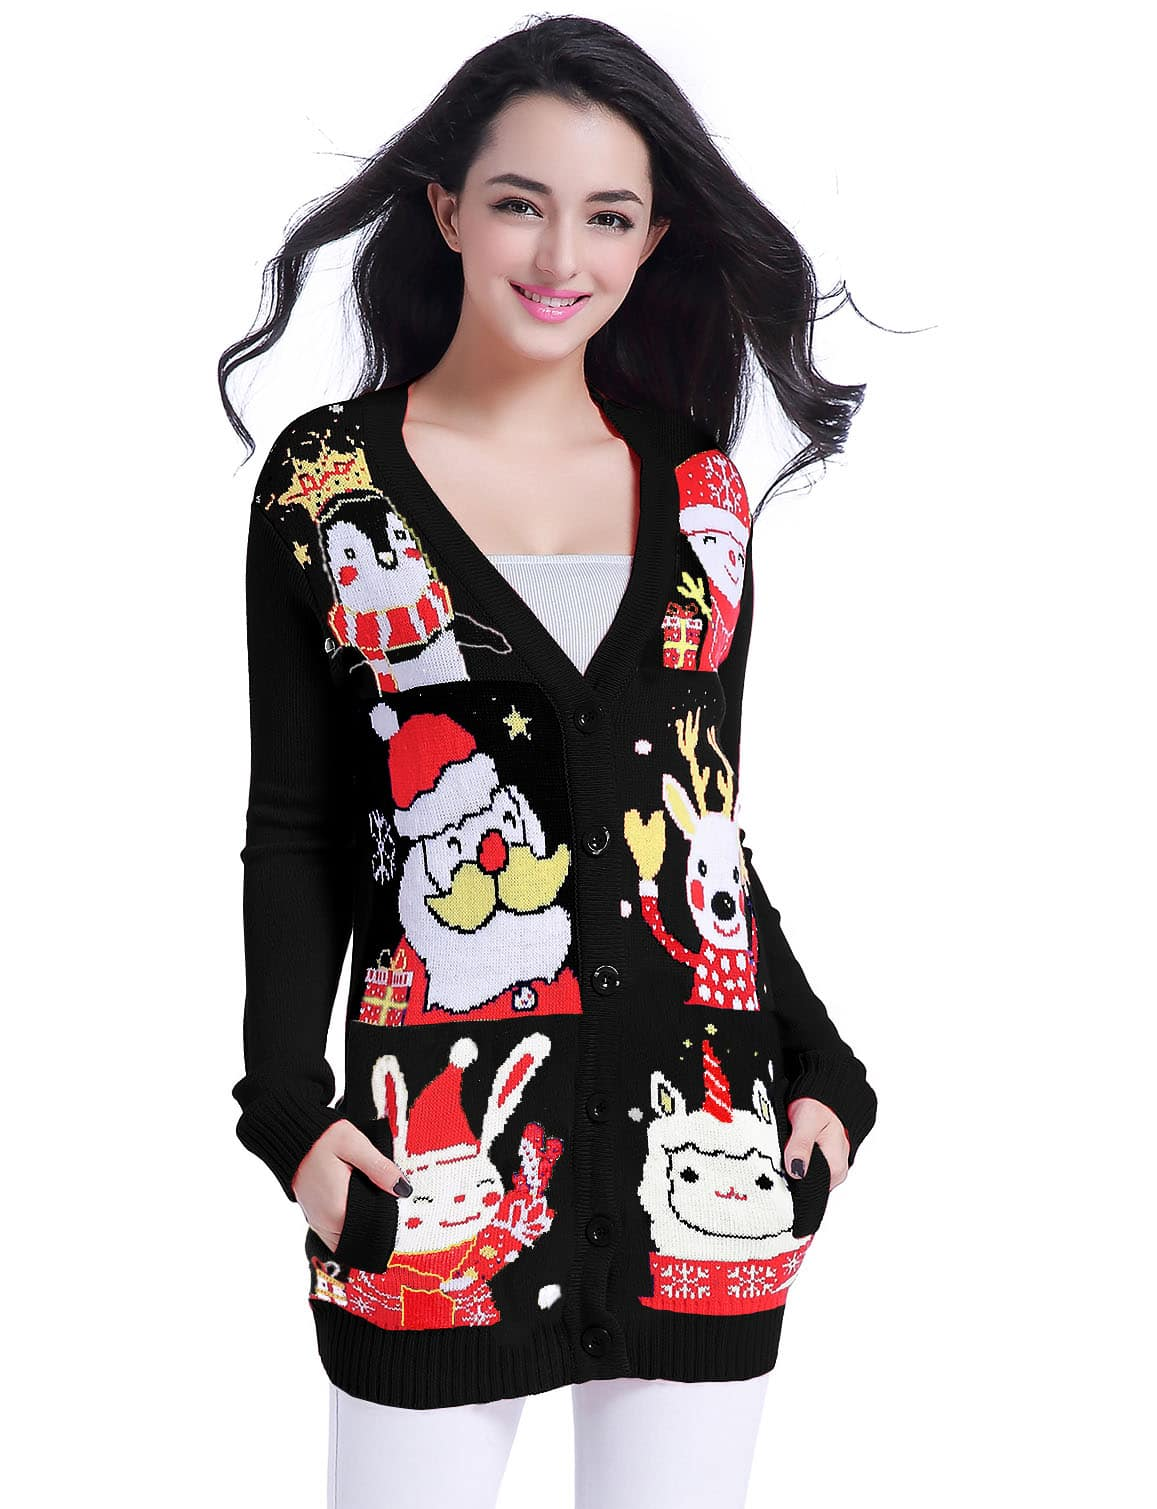 Ugly Christmas Sweater Women Girls Ladies Knit Cardigan @ AMZ $9.99-$17.99